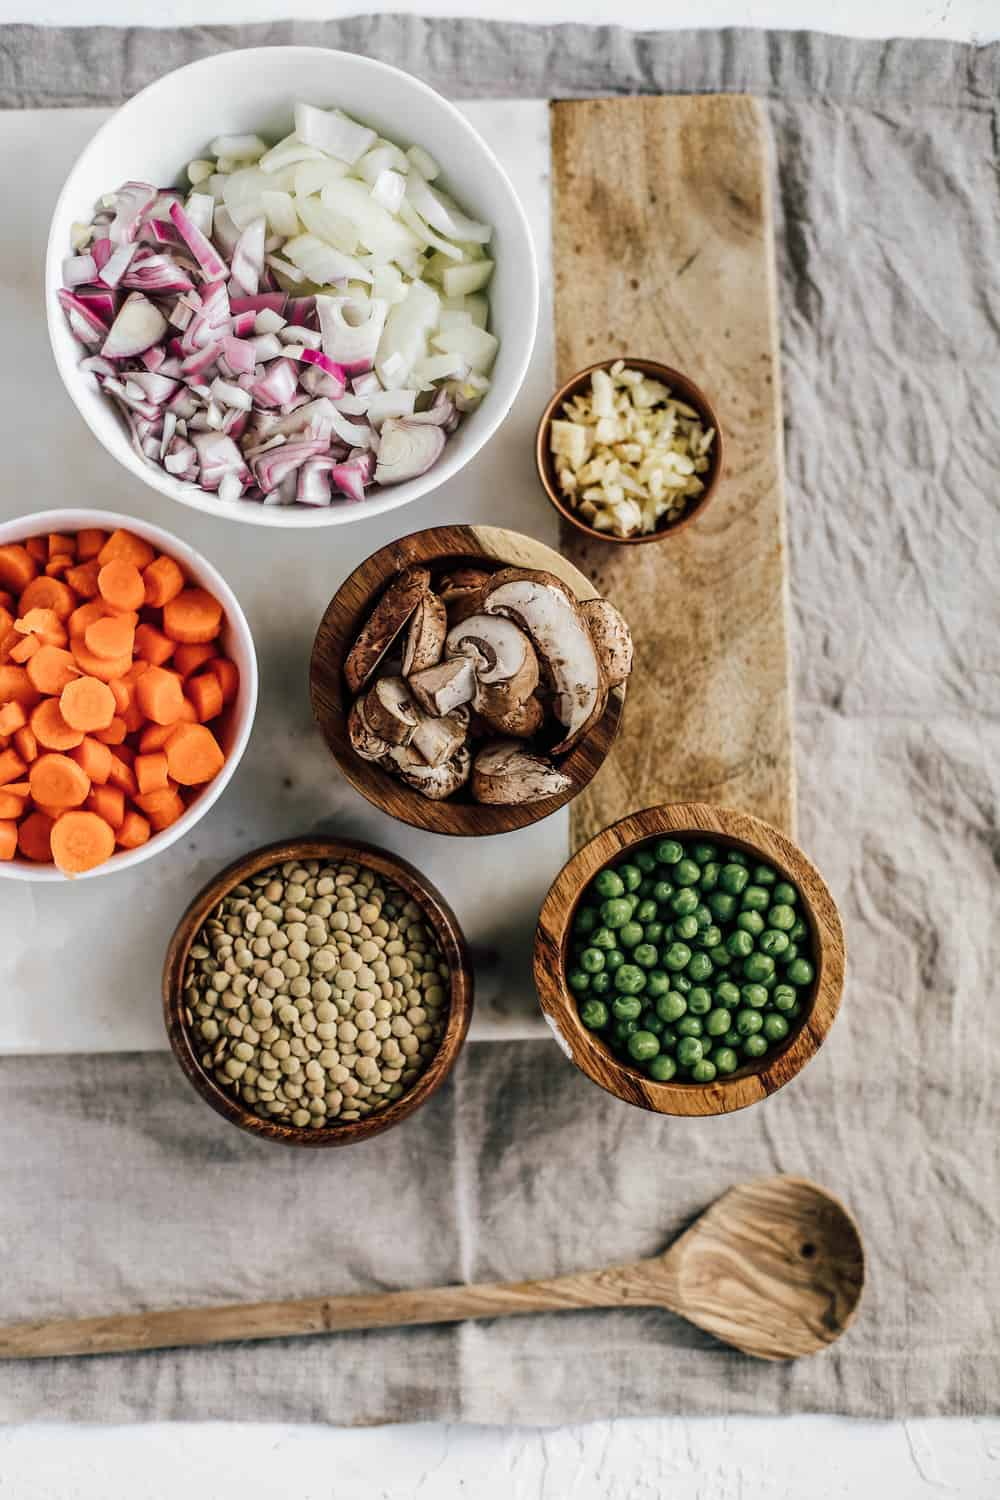 Small wooden bowls of lentils, peas, mushrooms, carrots, and diced onions.